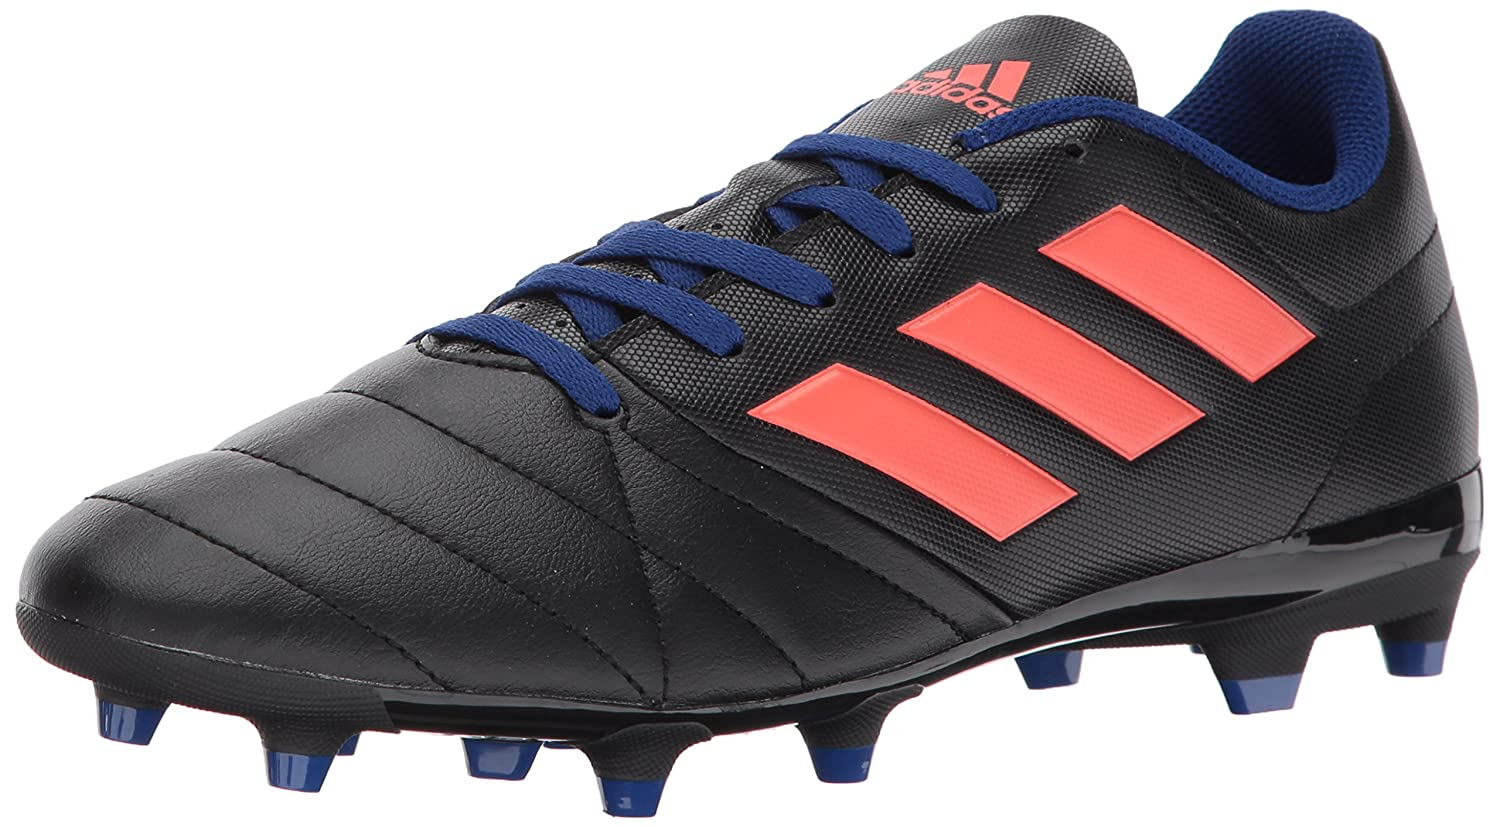 Adidas Ace 17.4 FG Women's Size 7 Mystery Ink/Easy Coral/Core Black (S77070)